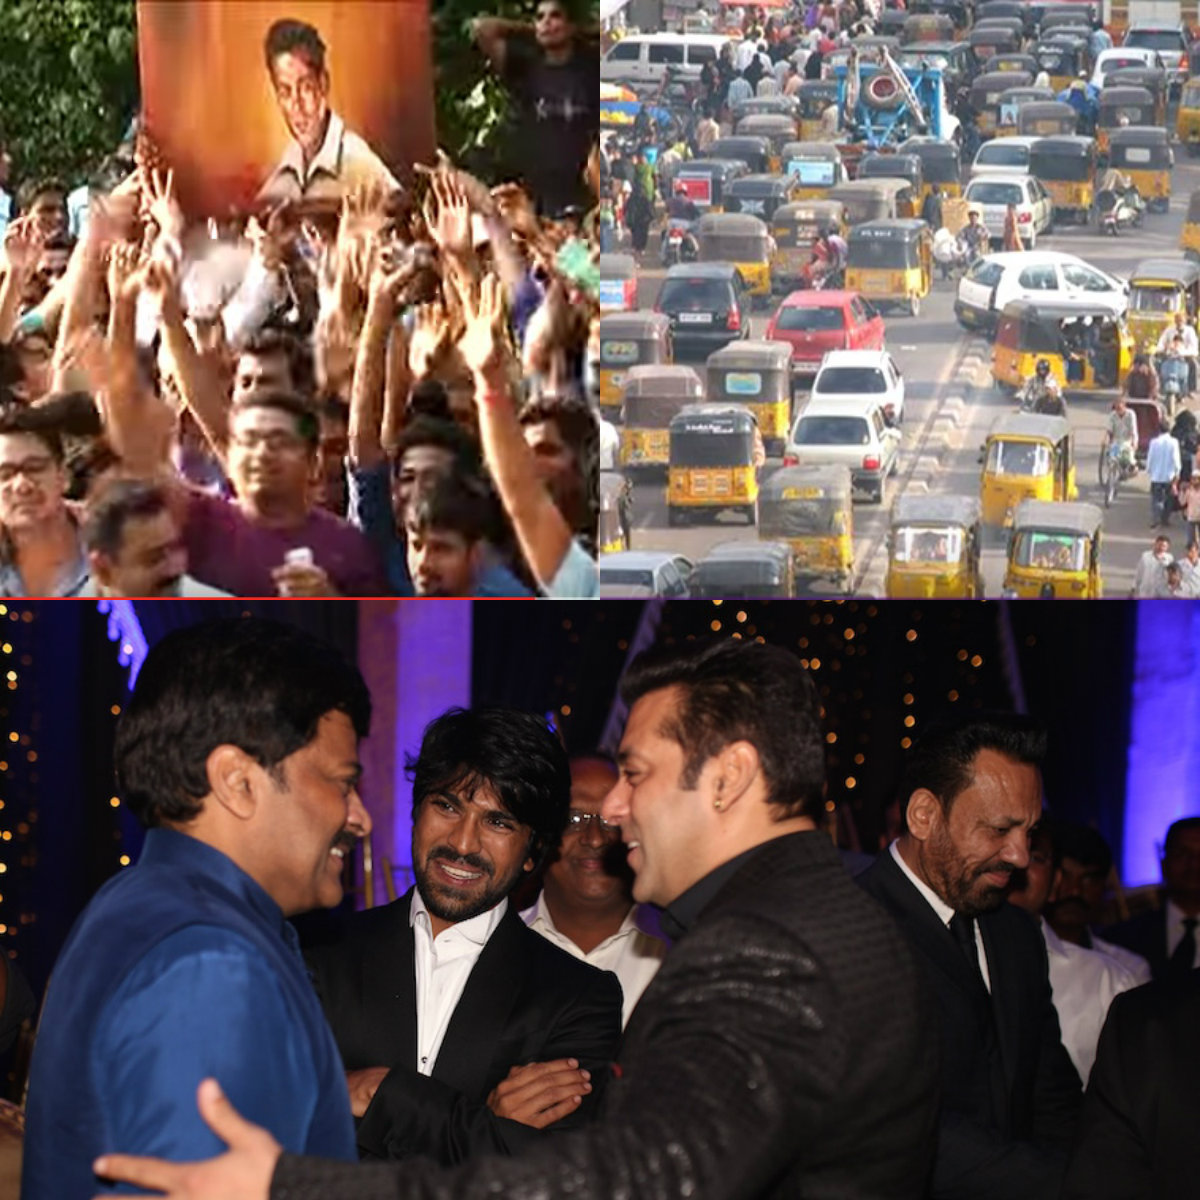 Salman Khan's presence causes Havoc in Hyderabad